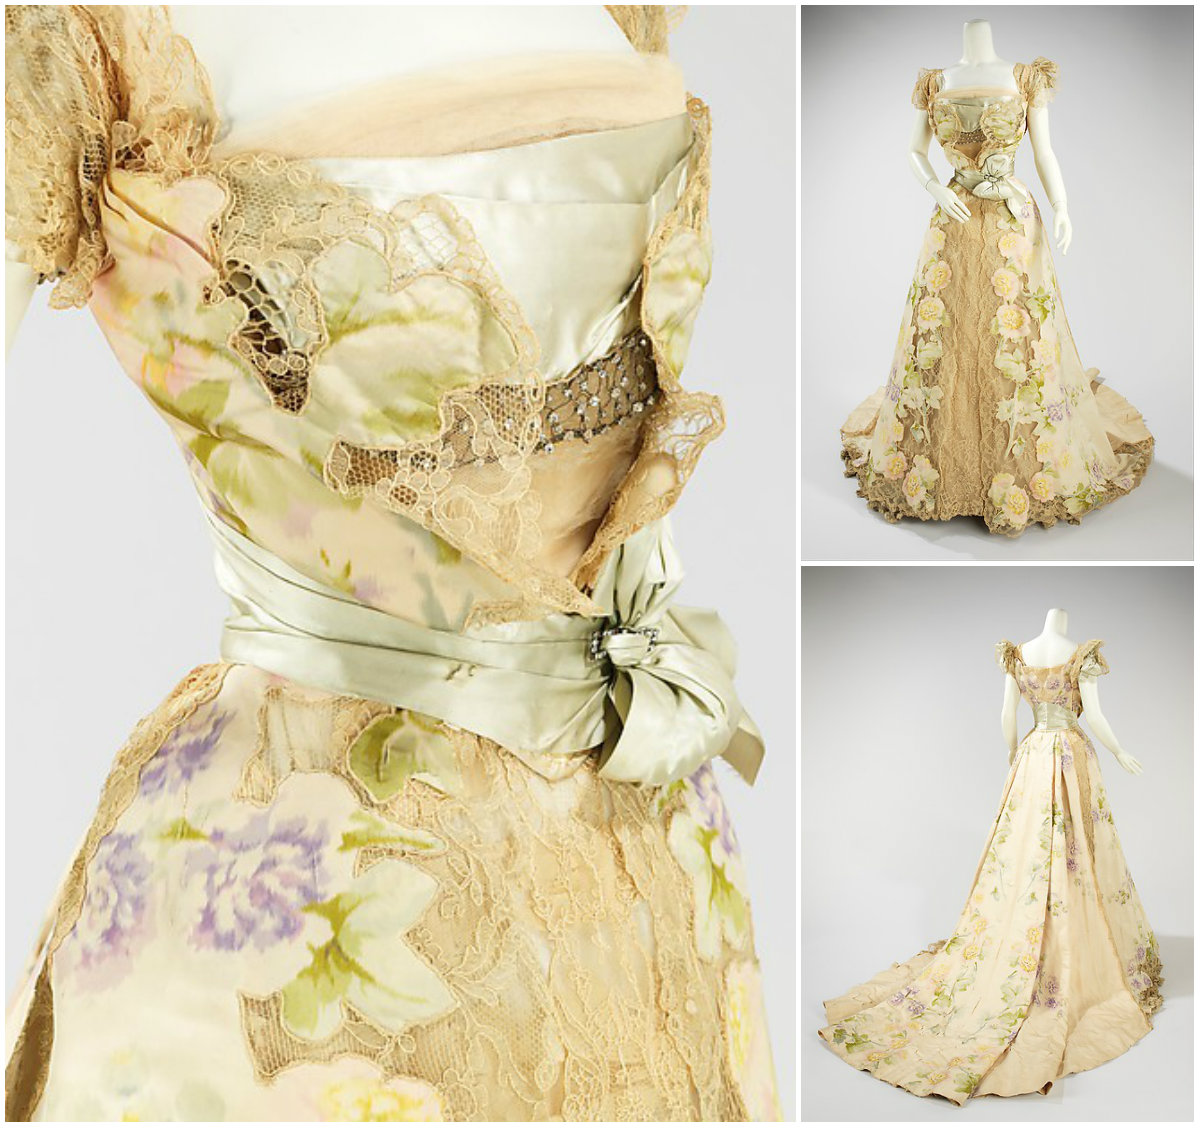 1902. Evening Dress. Silk, rhinestones, metal. metmuseum